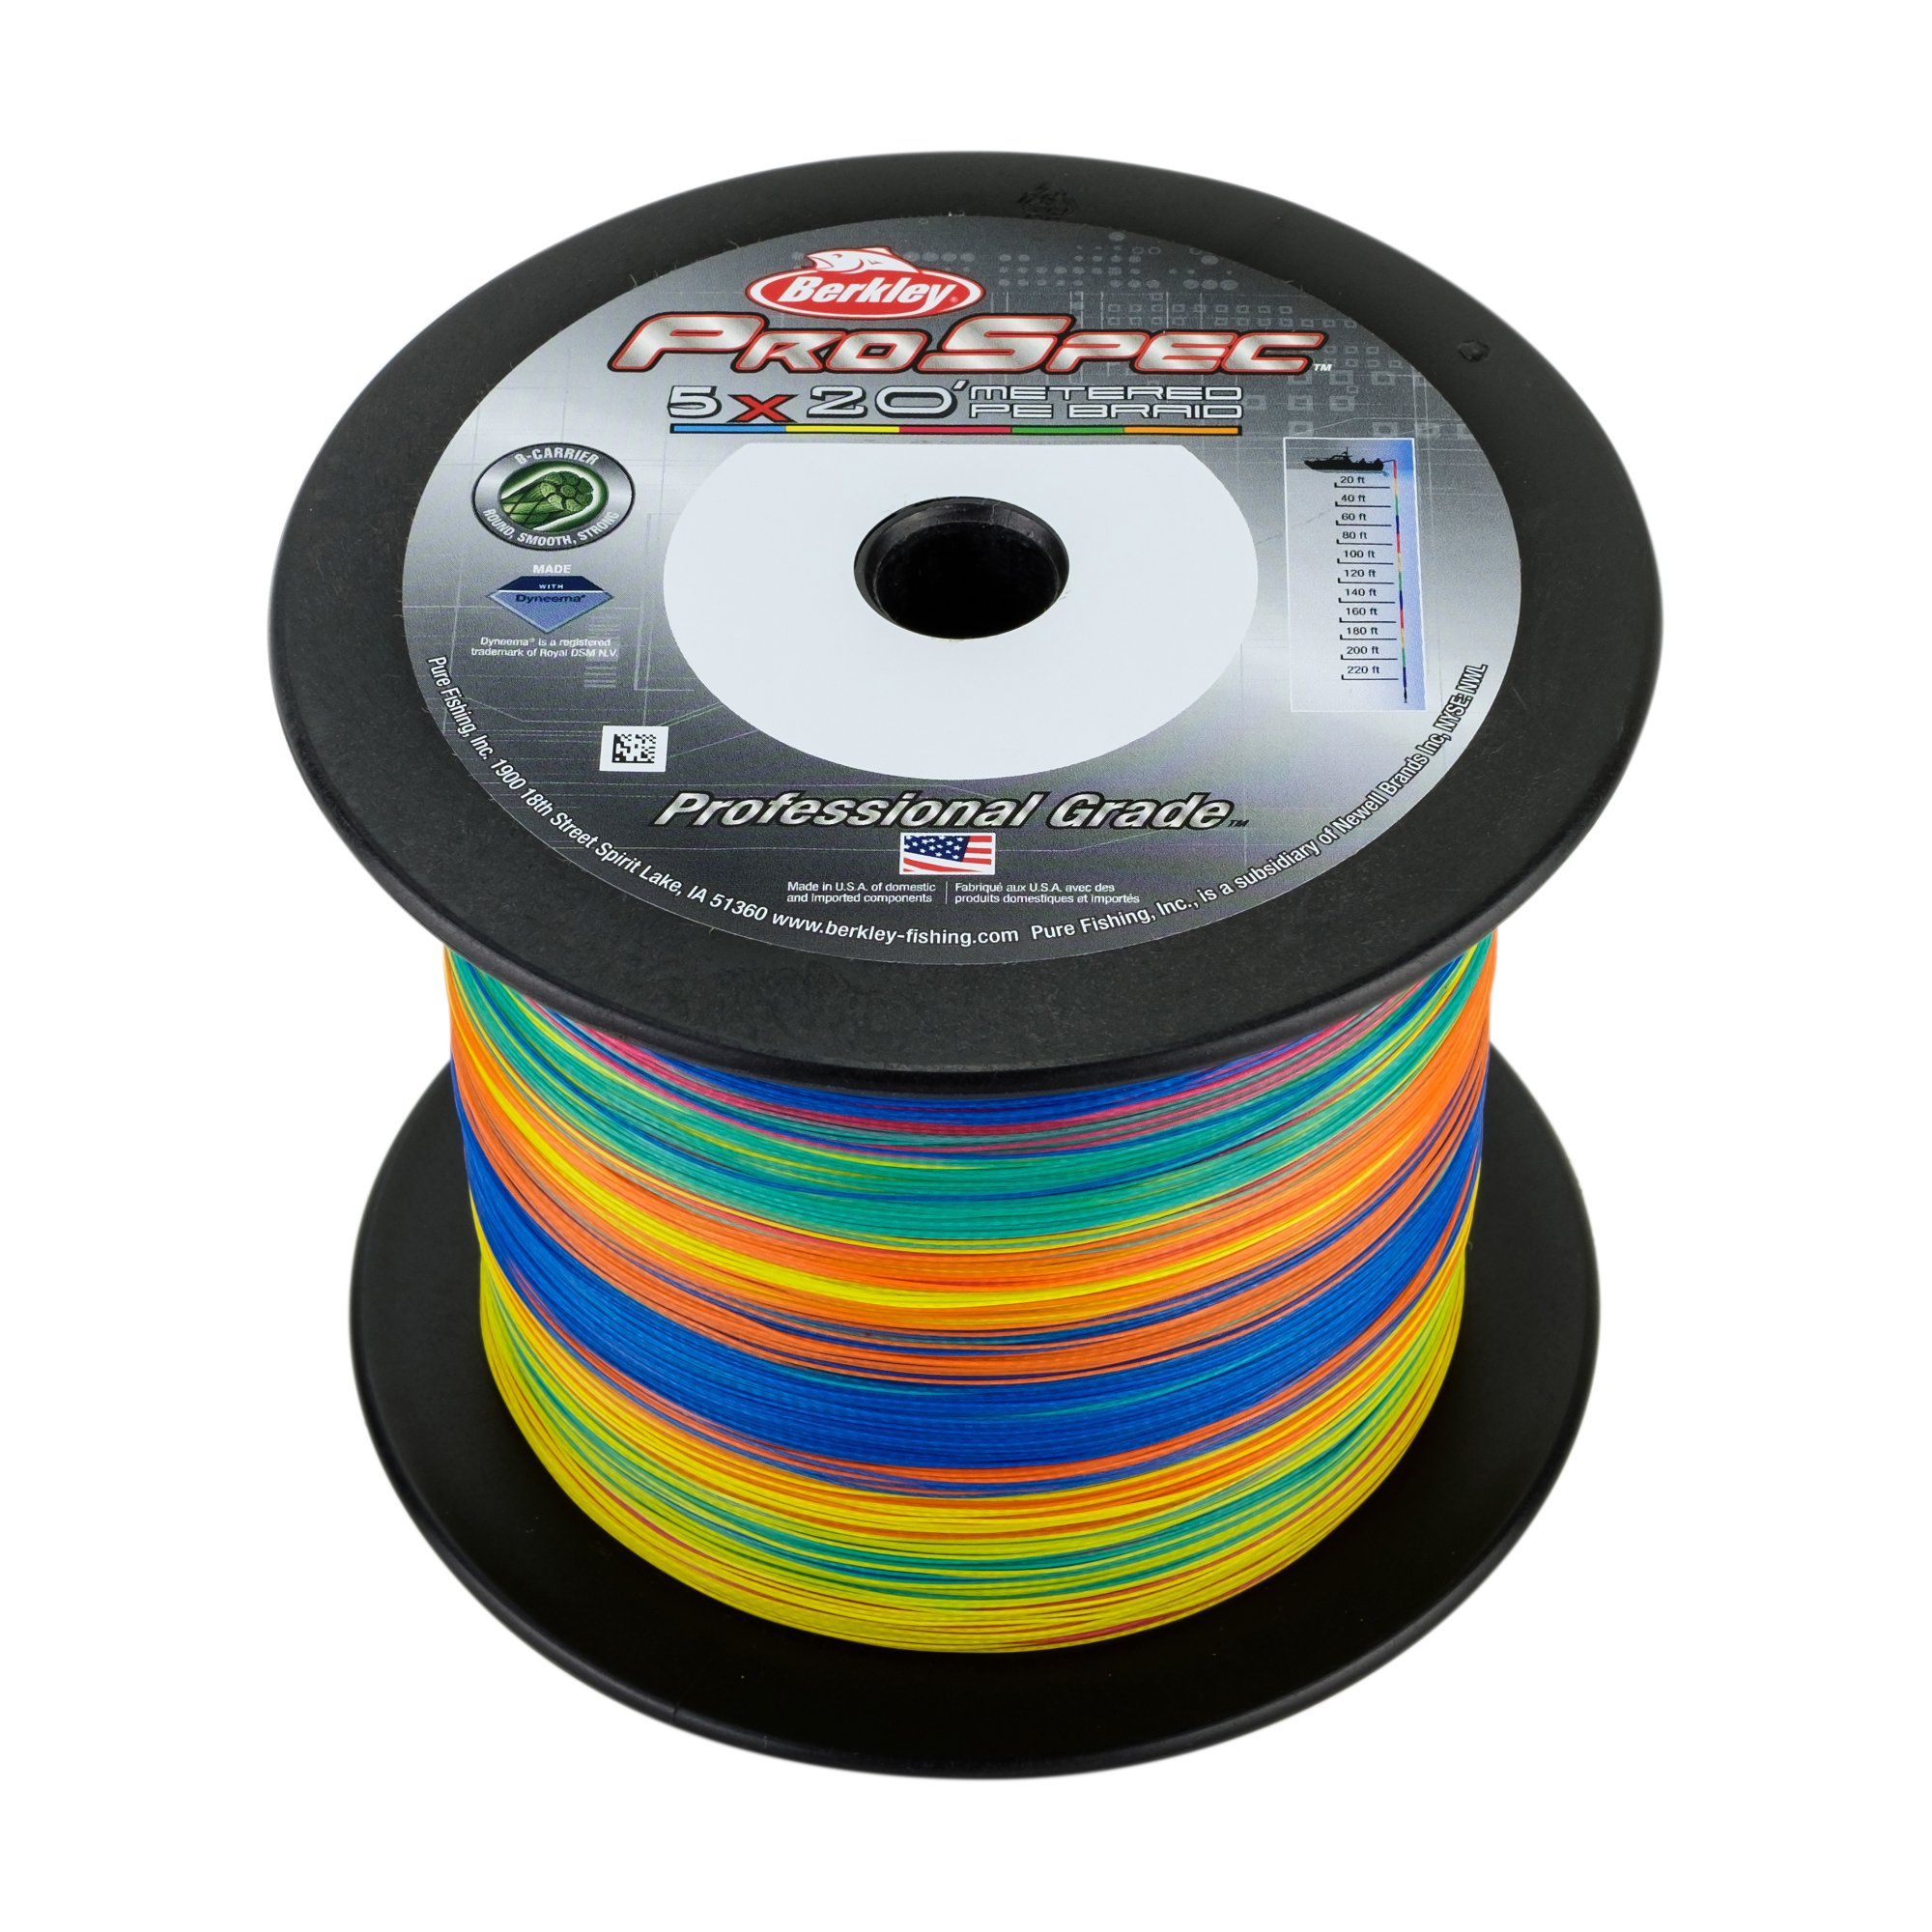 Berkley Psmbbk50-Mt Prospec 5X20' Metered Braid Fishing Line, 1500 yd/ 50 lb by Berkley